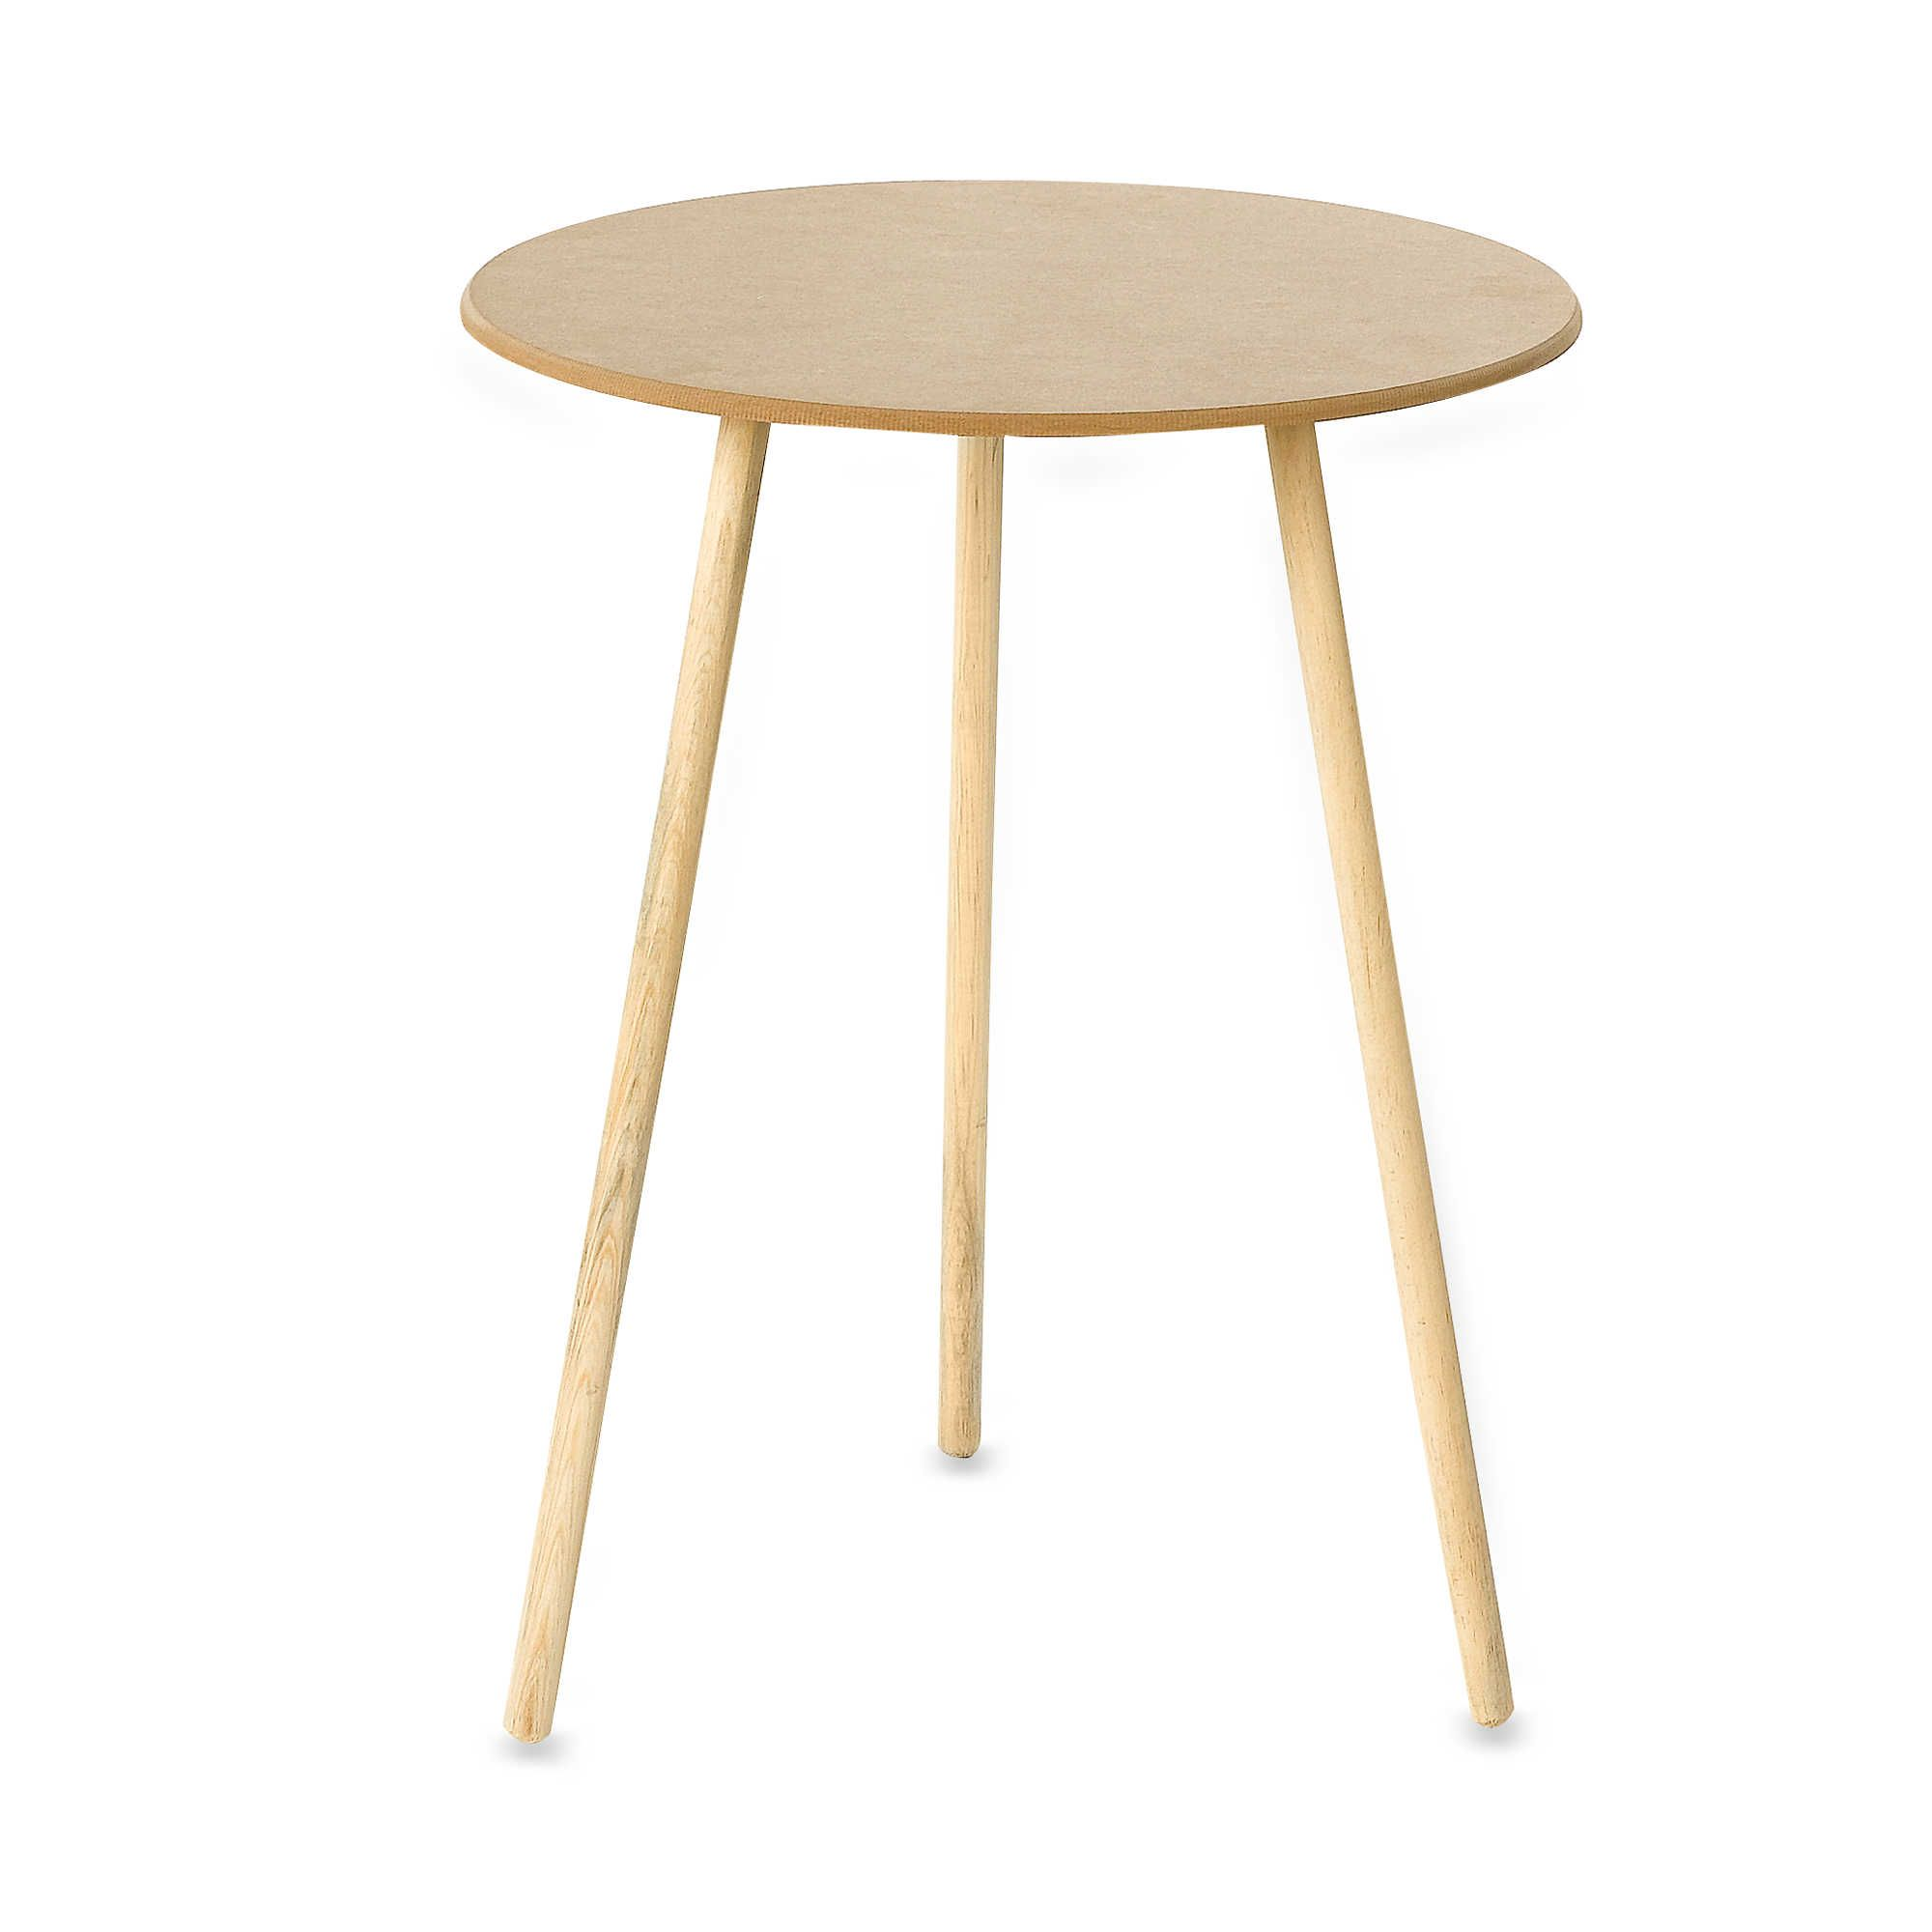 inch round decorator table new room decor accent cloths glass decorative tables wood kitchen ikea end world furniture storage solutions barn style reclaimed trestle dining garden